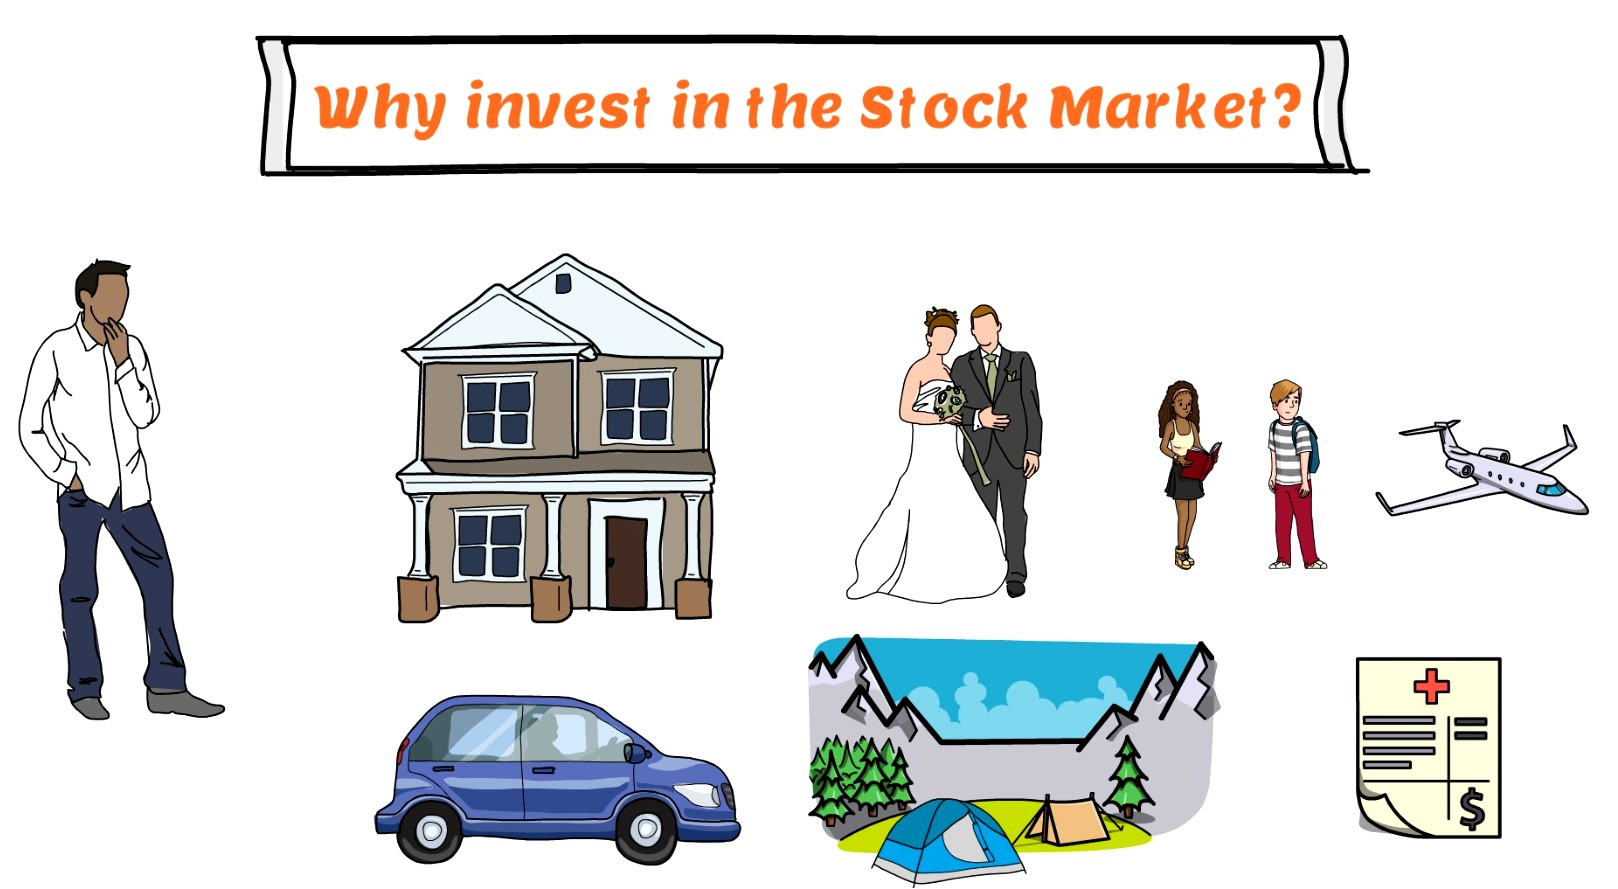 Why invest in the stock market - stock market for beginners